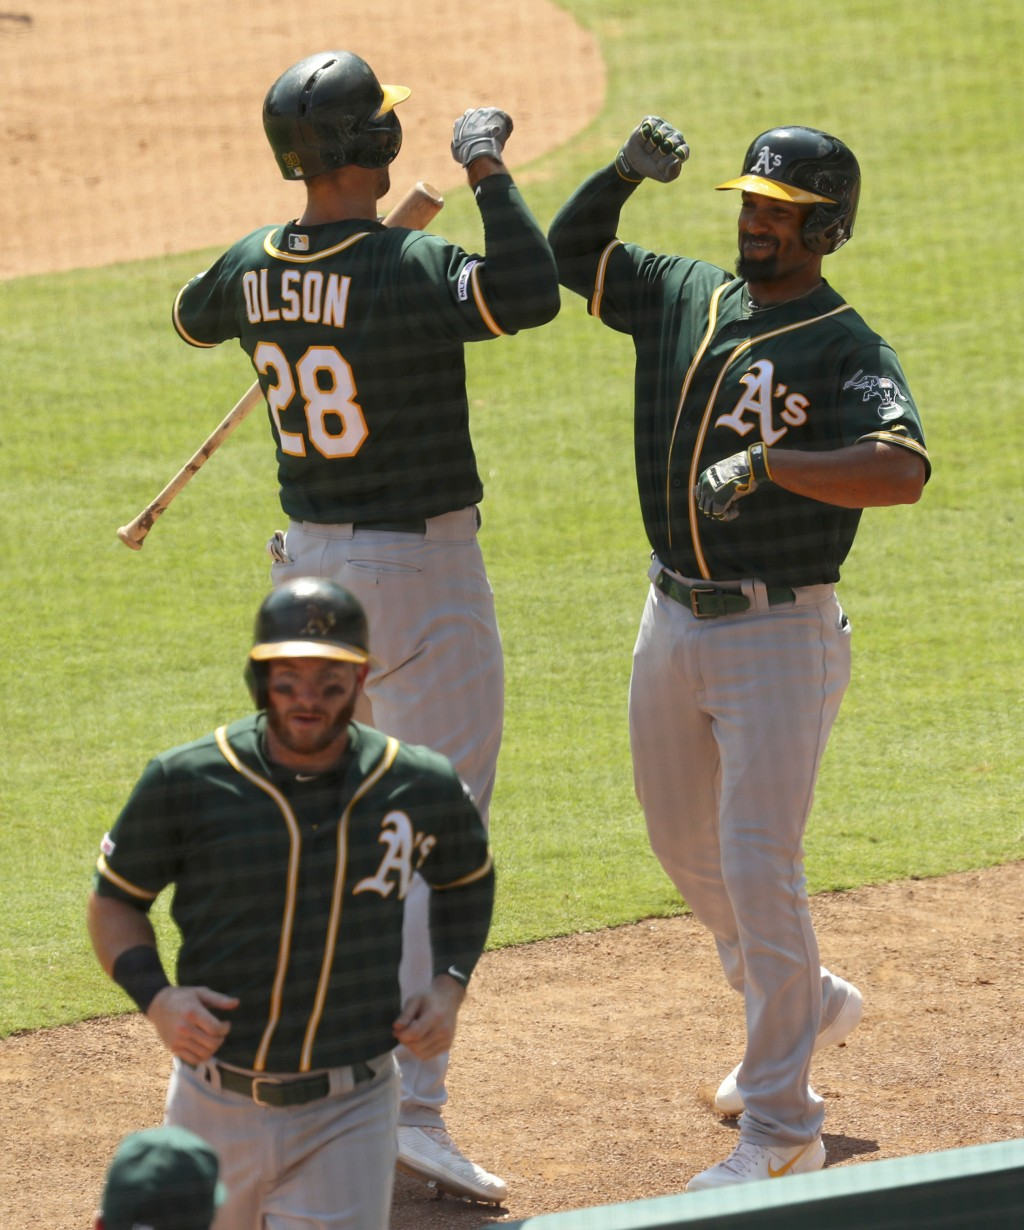 Oakland Athletics Matt Olson (28) bumps elbows with Marcus Semien (10) after his two-run home run against the Texas Rangers in the third inning in a b